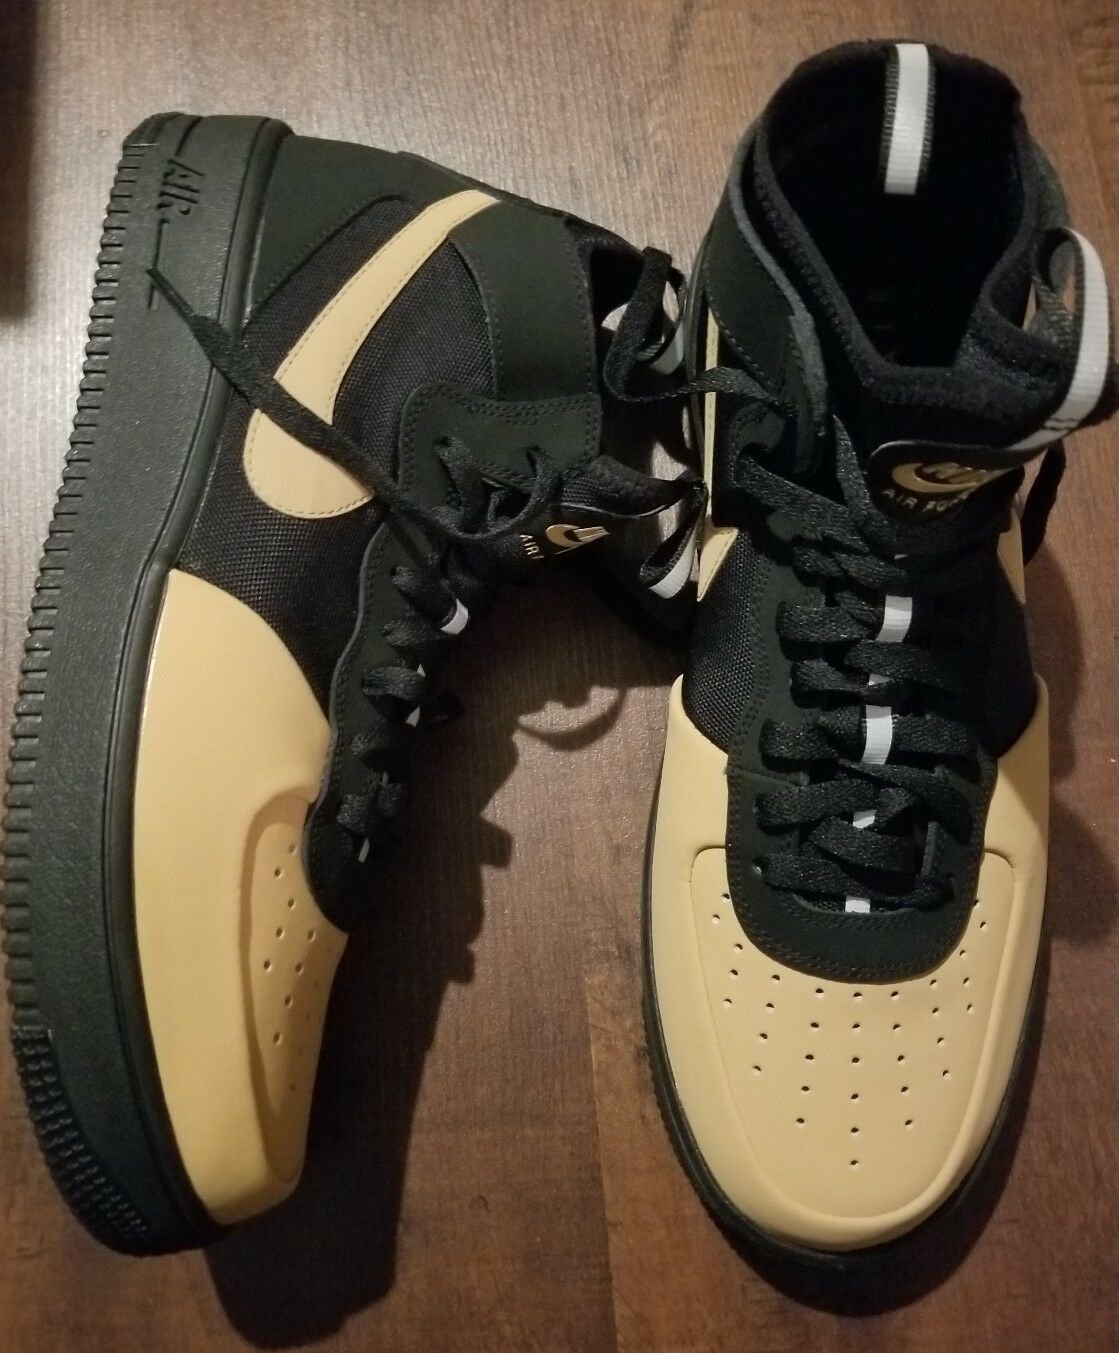 Nike Uomo air force 1 tech dimensioni 11,5 ultraforce tech 1 nero / oro ah6746-002 elementale aad8fc